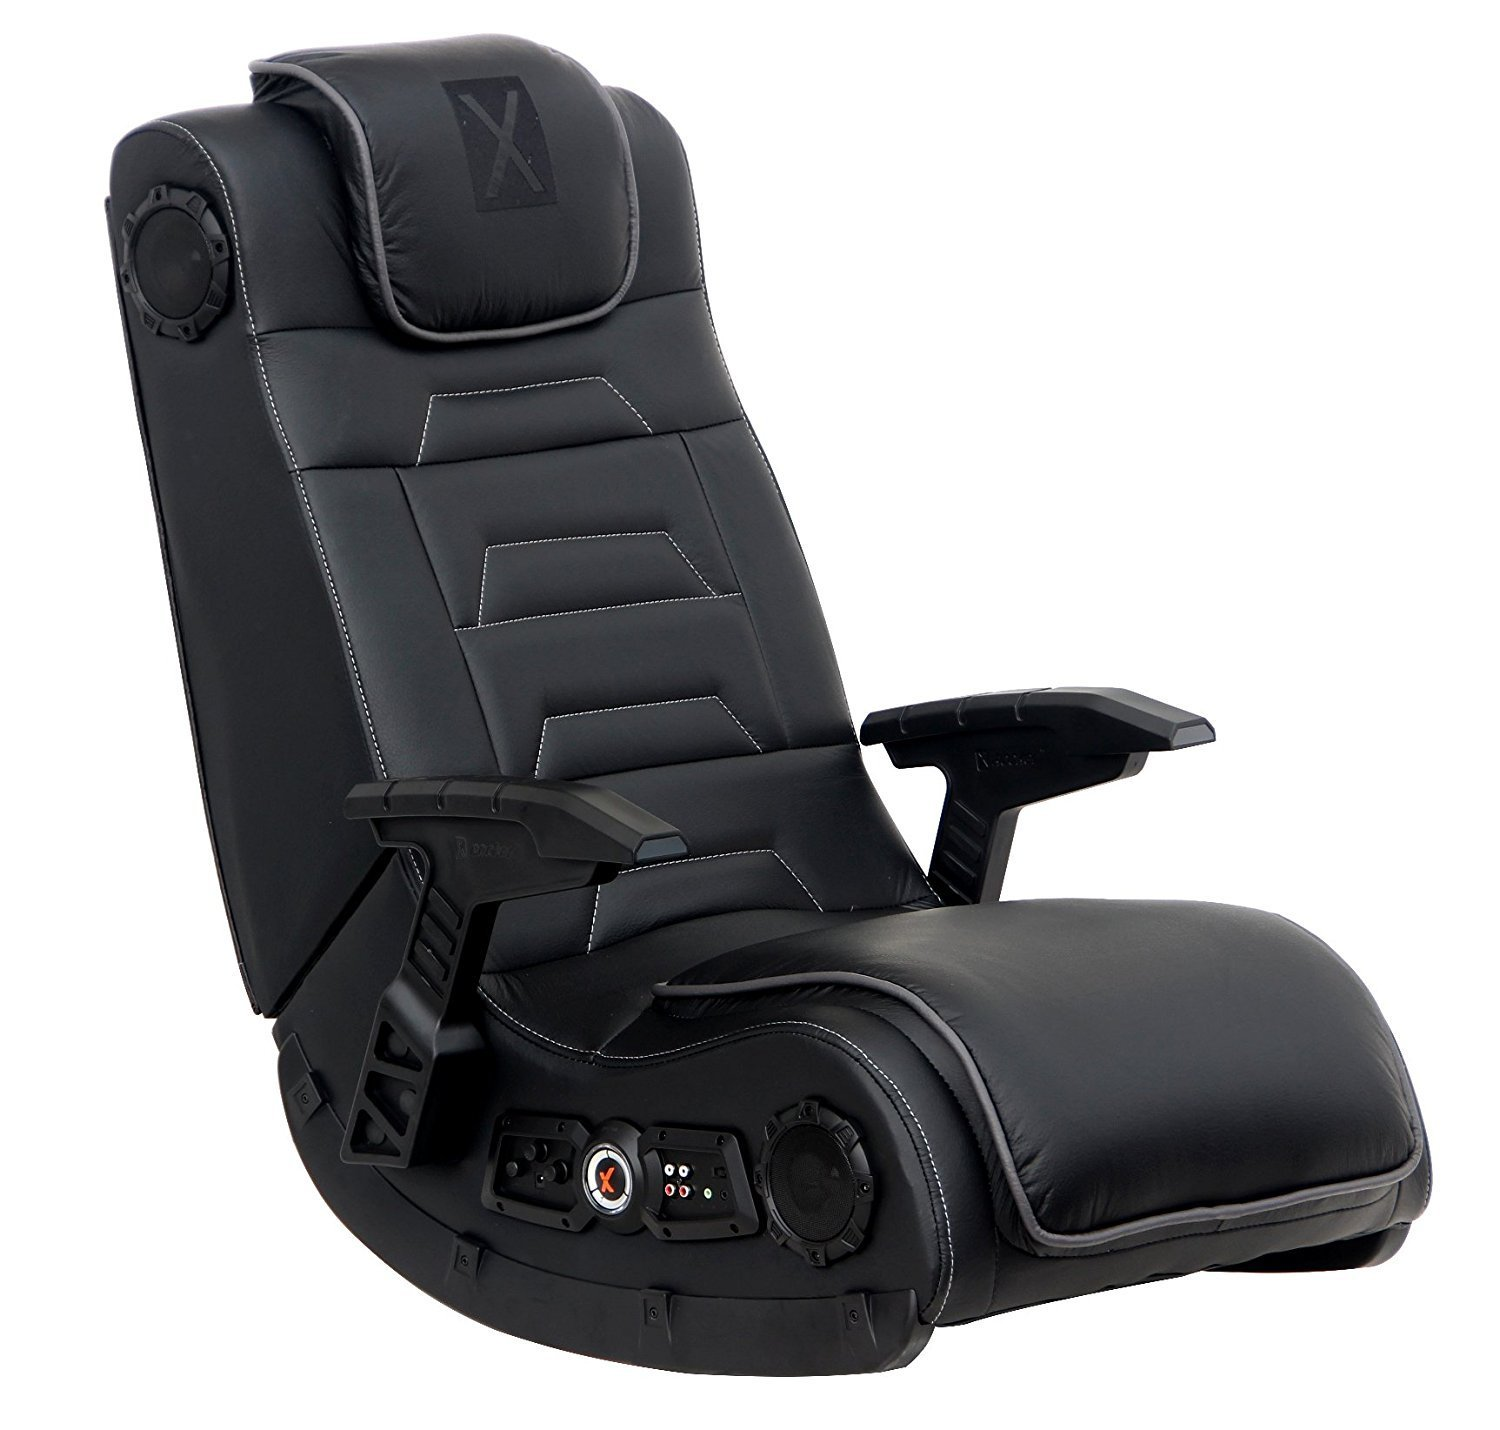 Top 20 PC Chairs To Buy In 2019